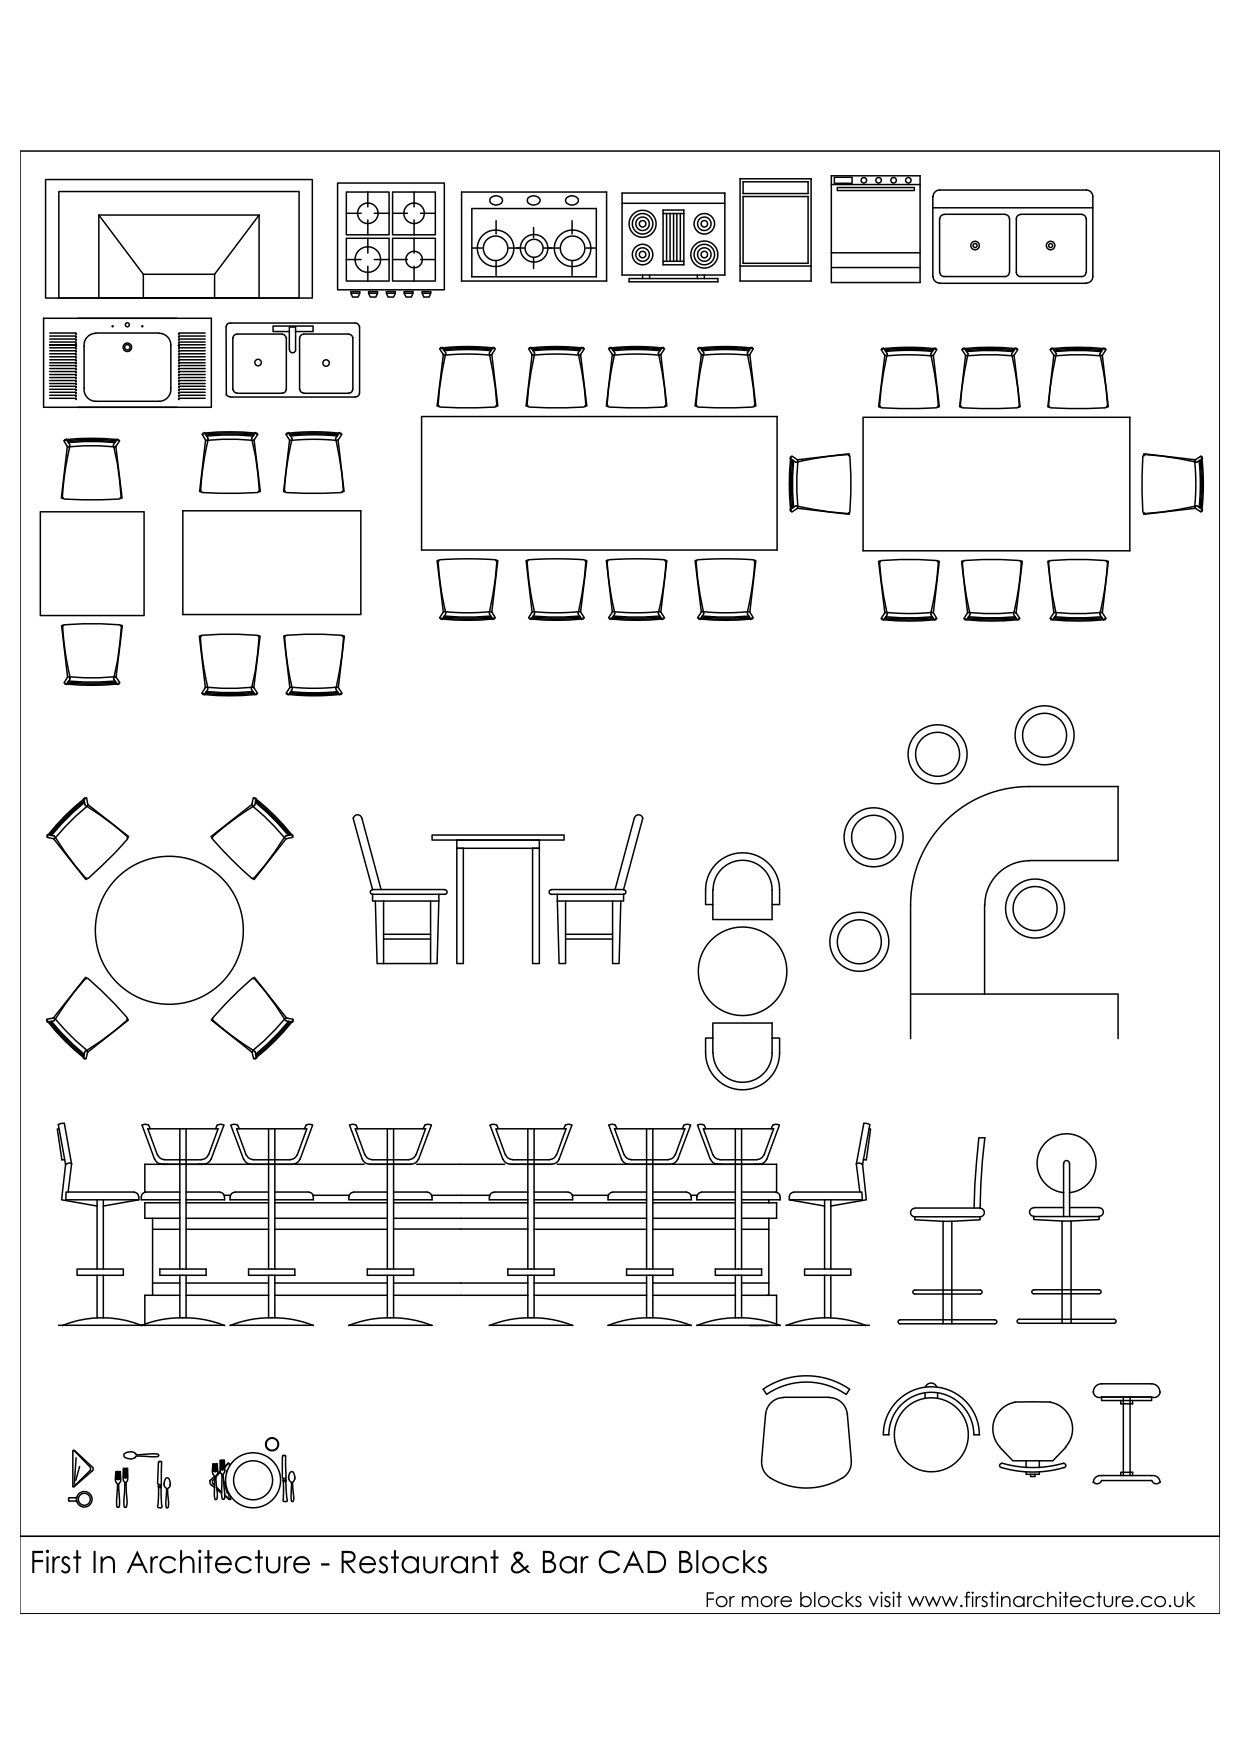 Free cad blocks restaurant and bar d wireframe